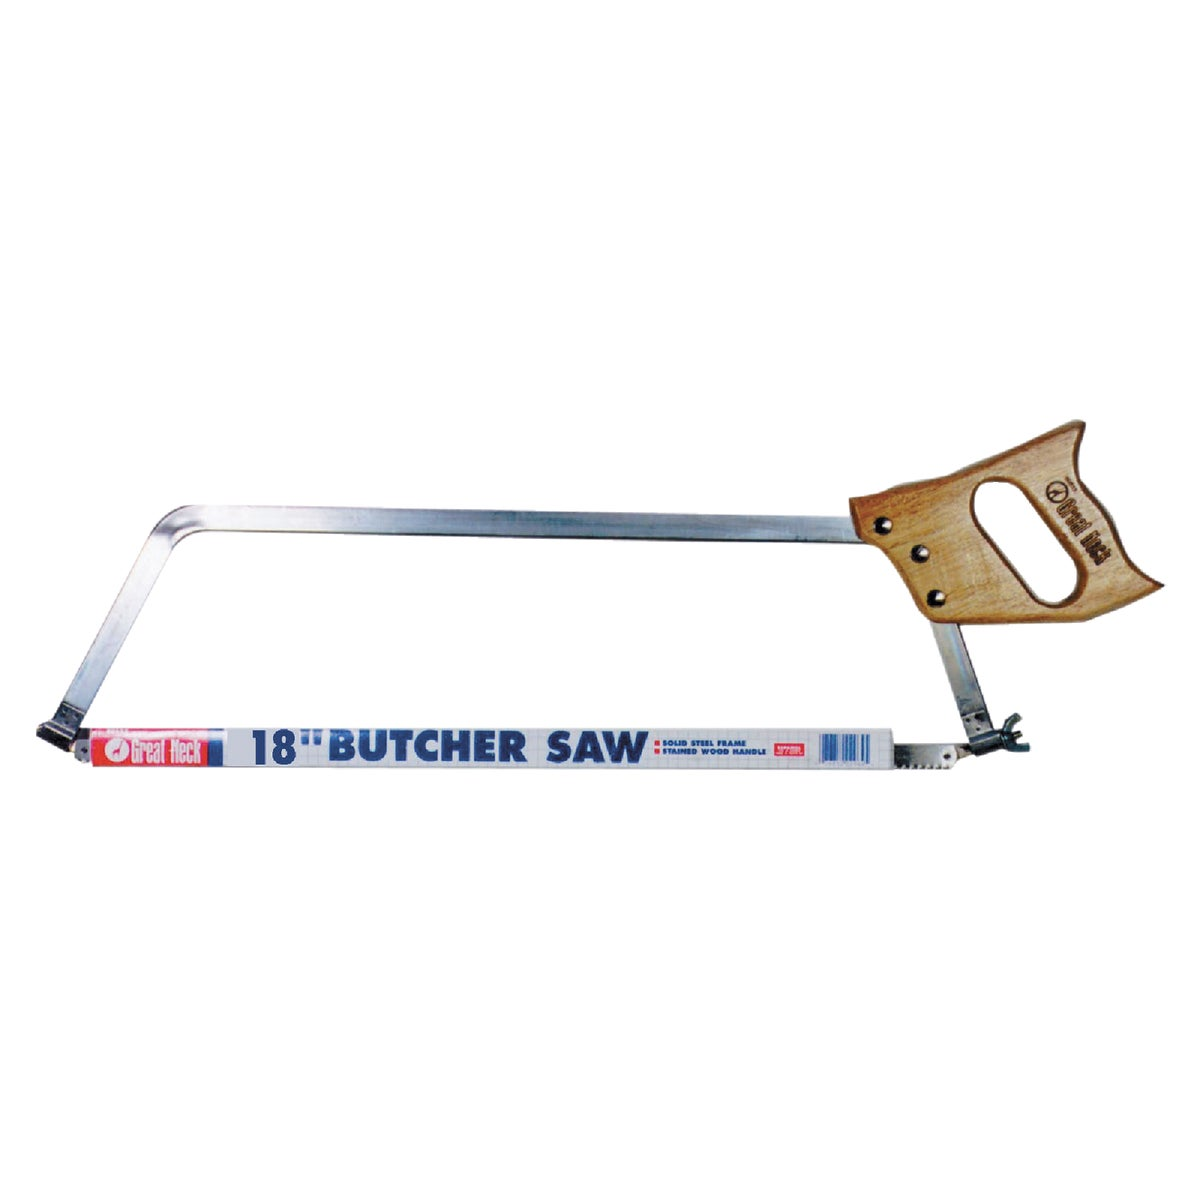 "18"" BUTCHER SAW - BUS18 by Great Neck Saw Inc"